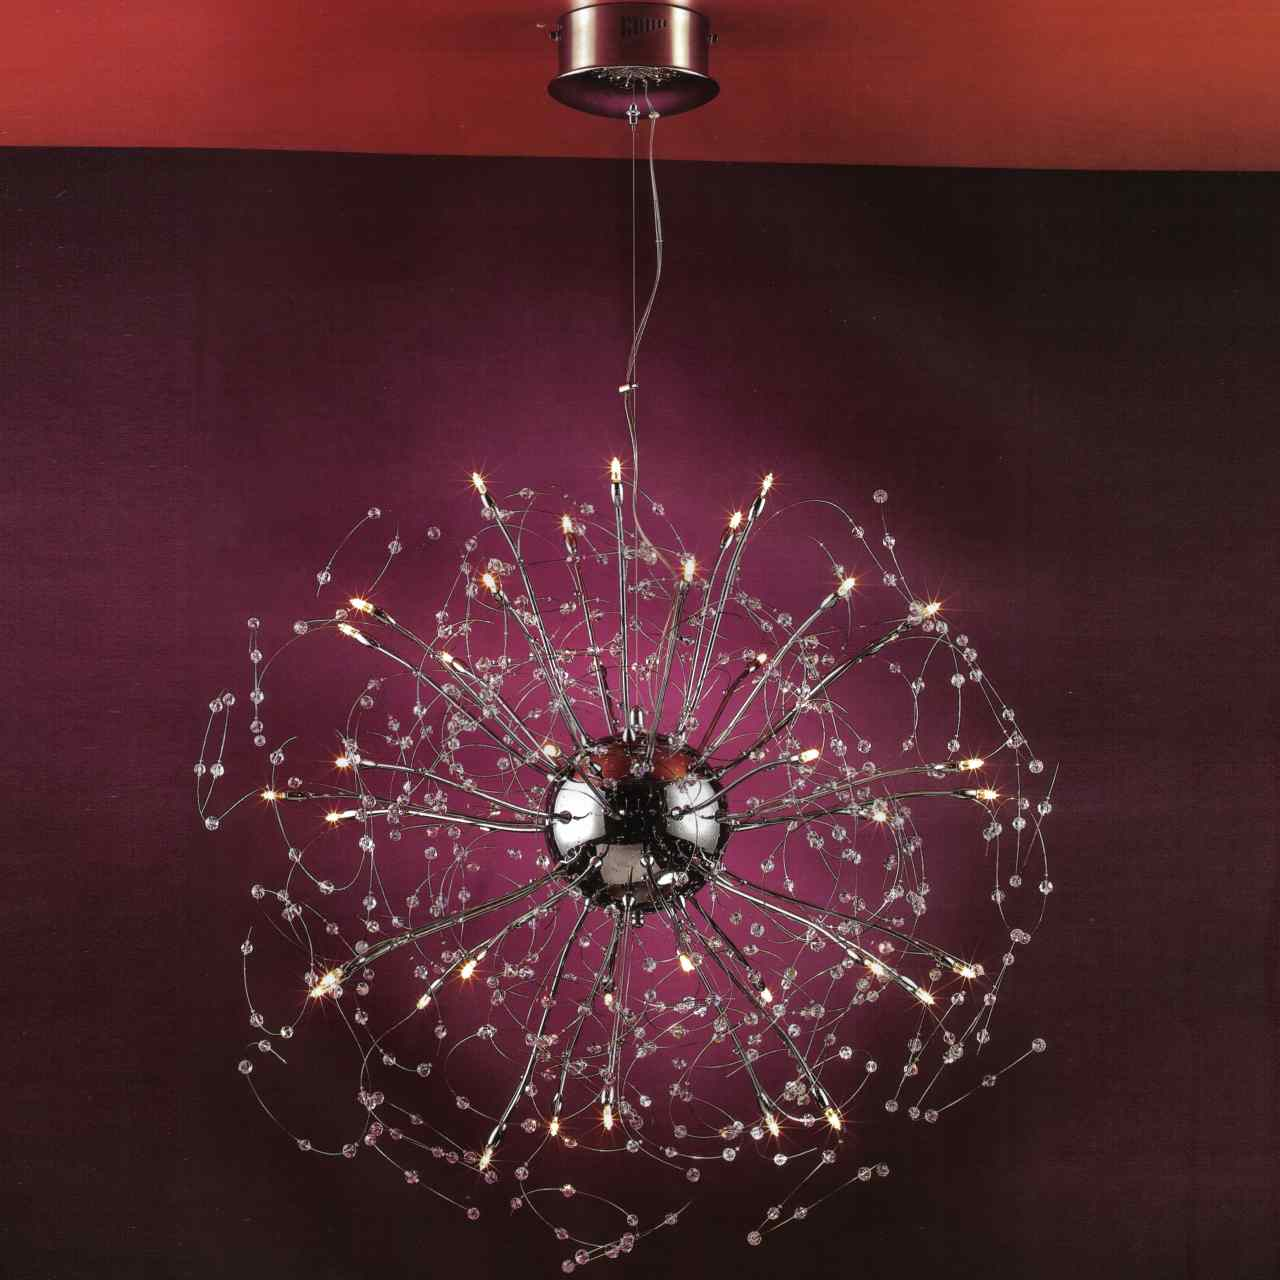 Brizzo lighting stores 28 galassia modern crystal round chandelier picture of 28 galassia modern crystal round chandelier polished chrome 30 lights arubaitofo Images